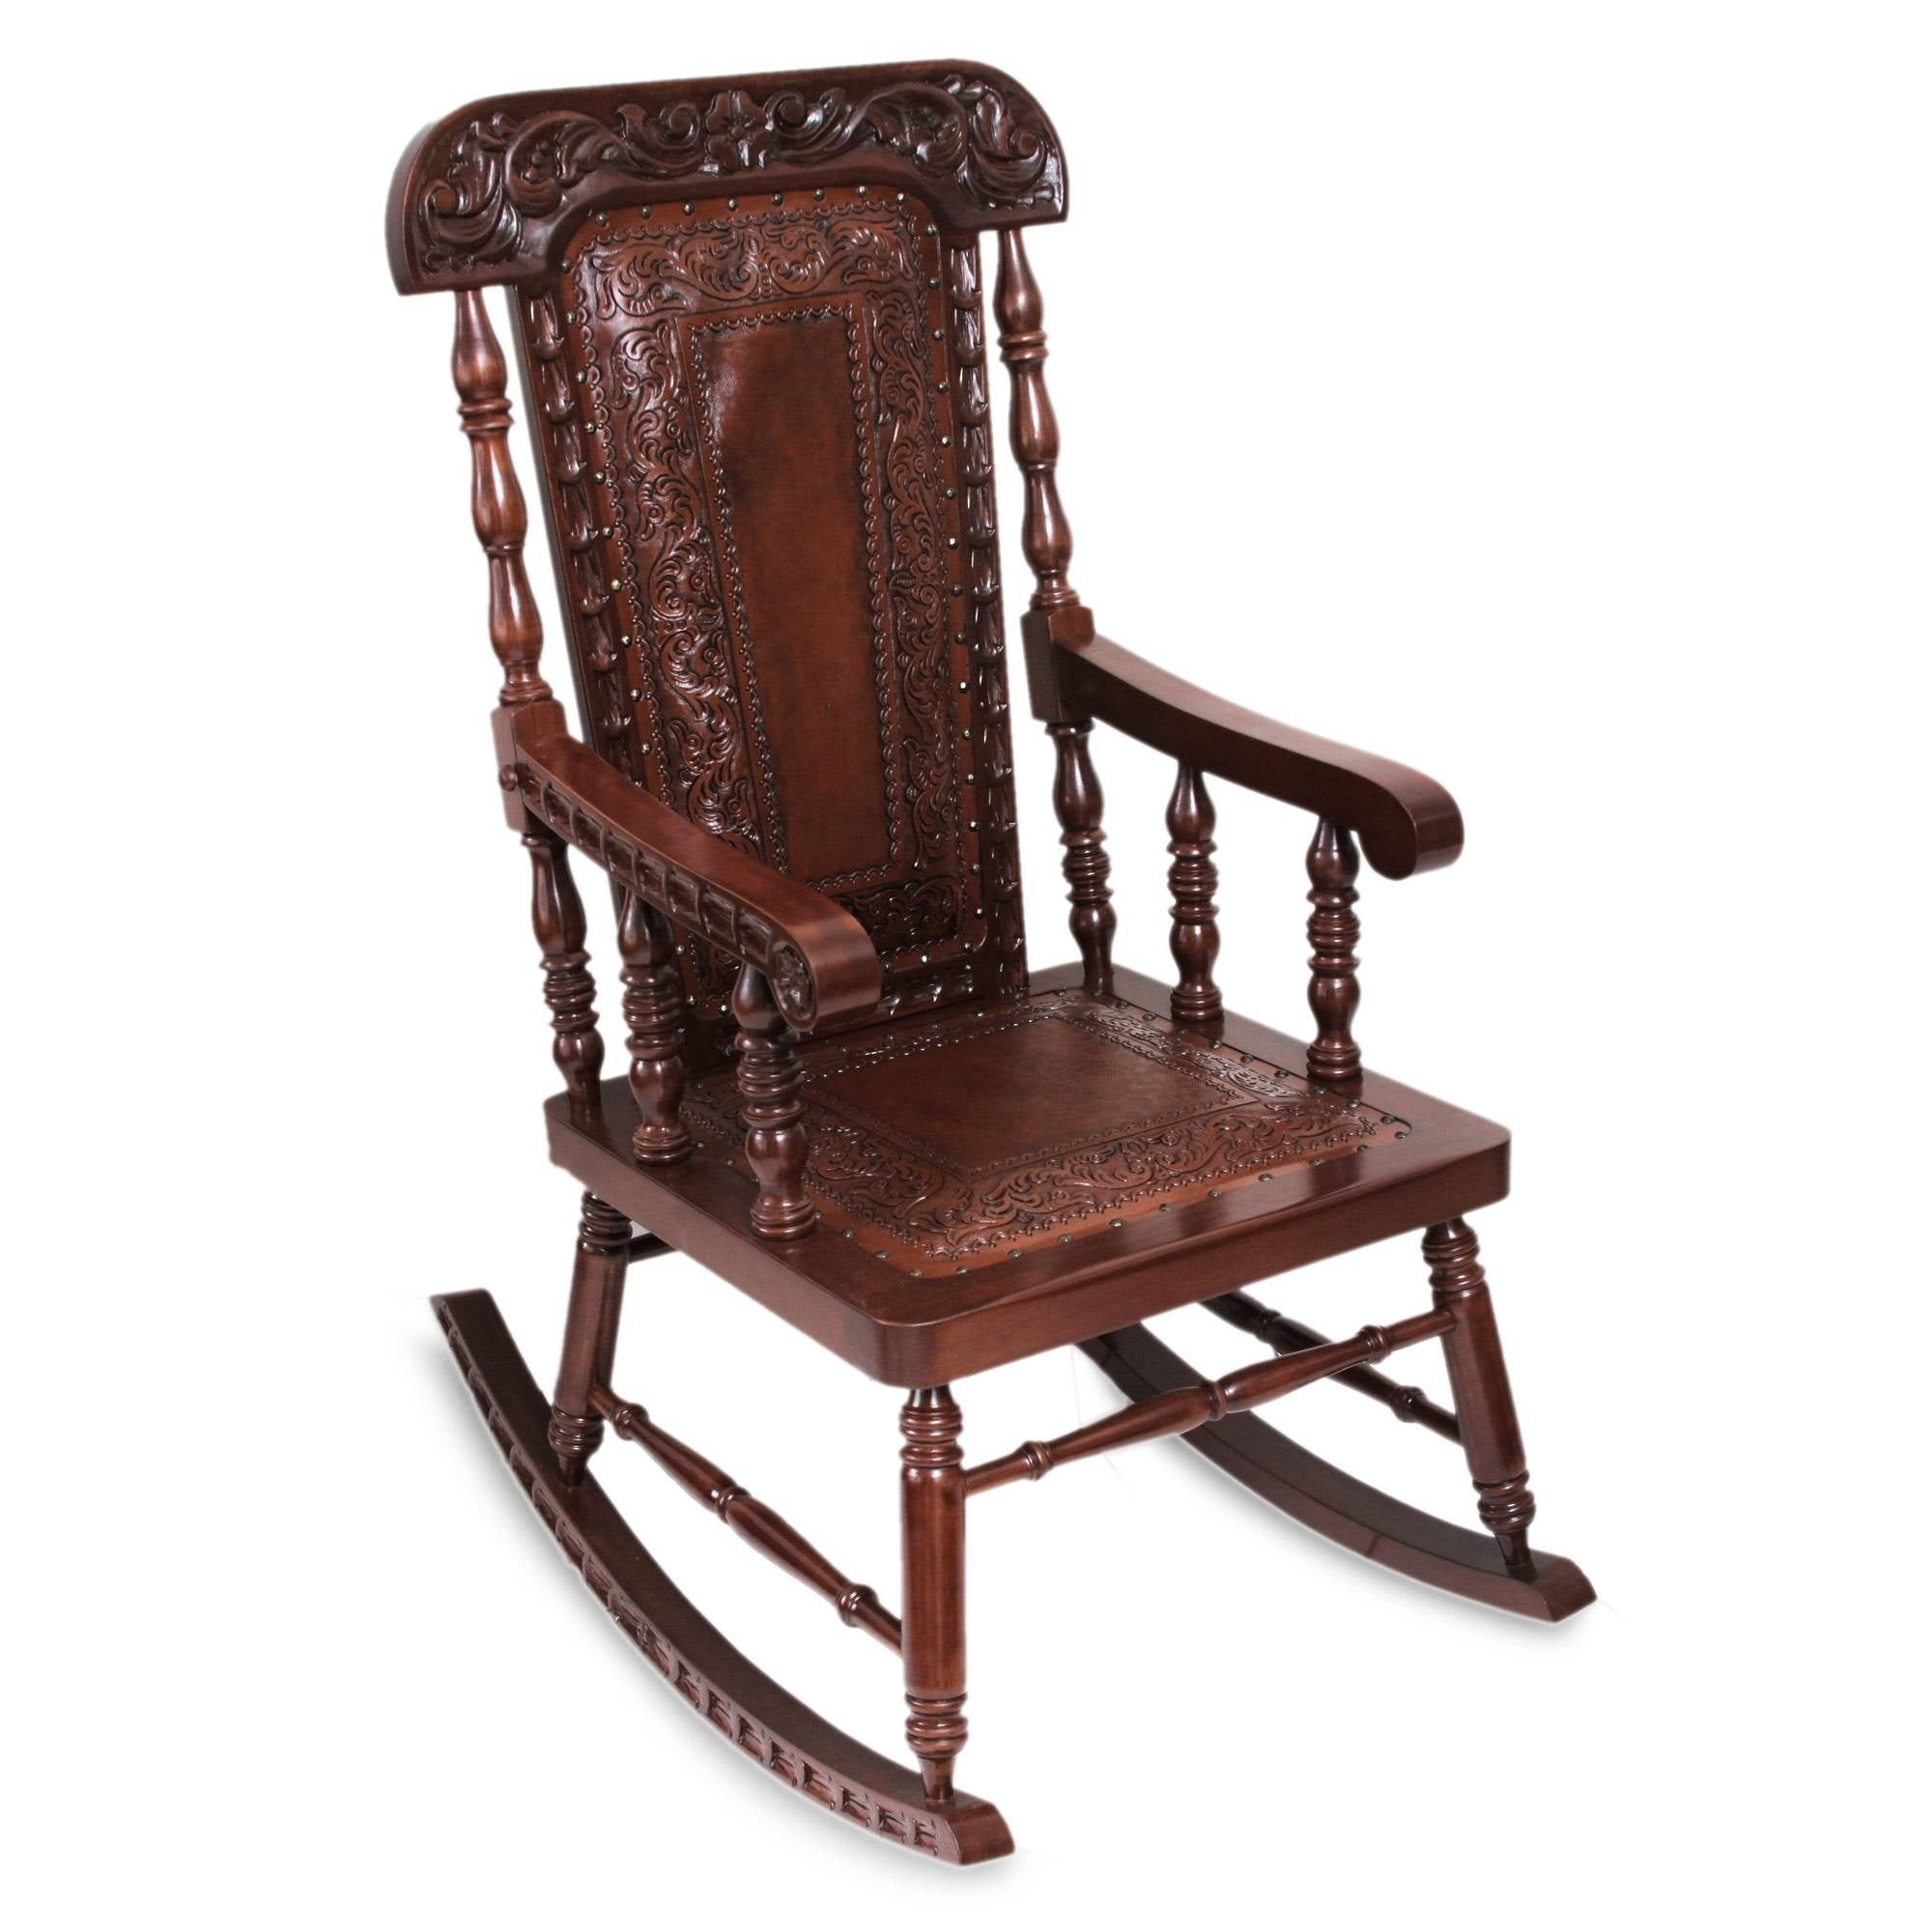 Handmade Nobility Cedar And Leather Rocking Chair (Peru) Pertaining To Dark Walnut Brown Wooden Rocking Chairs (#11 of 20)